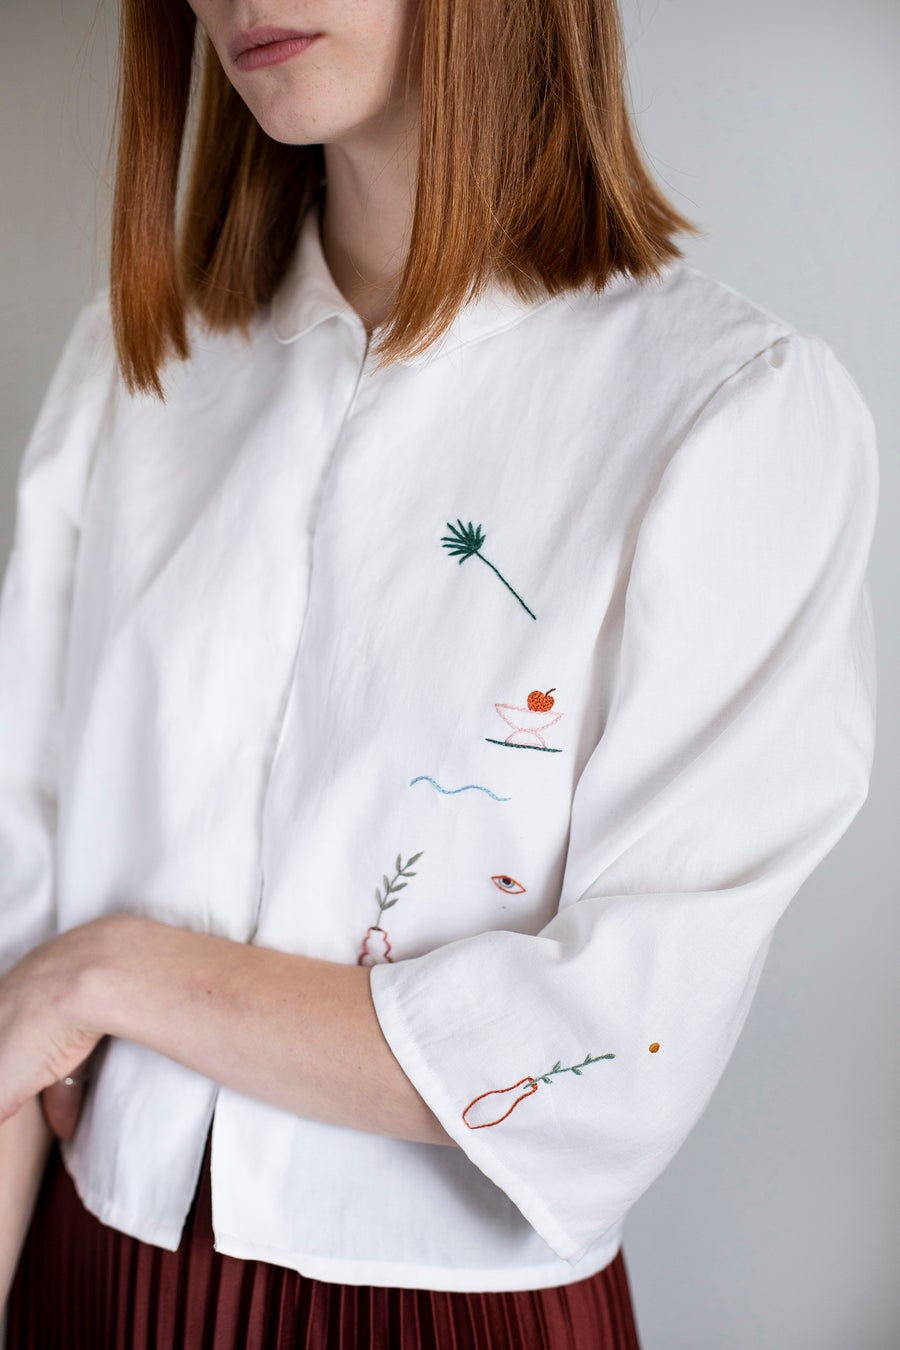 Image of Pre-order: Arinna shirt - 1st Damaja designed shirt, made of 100% organic cotton in Berlin